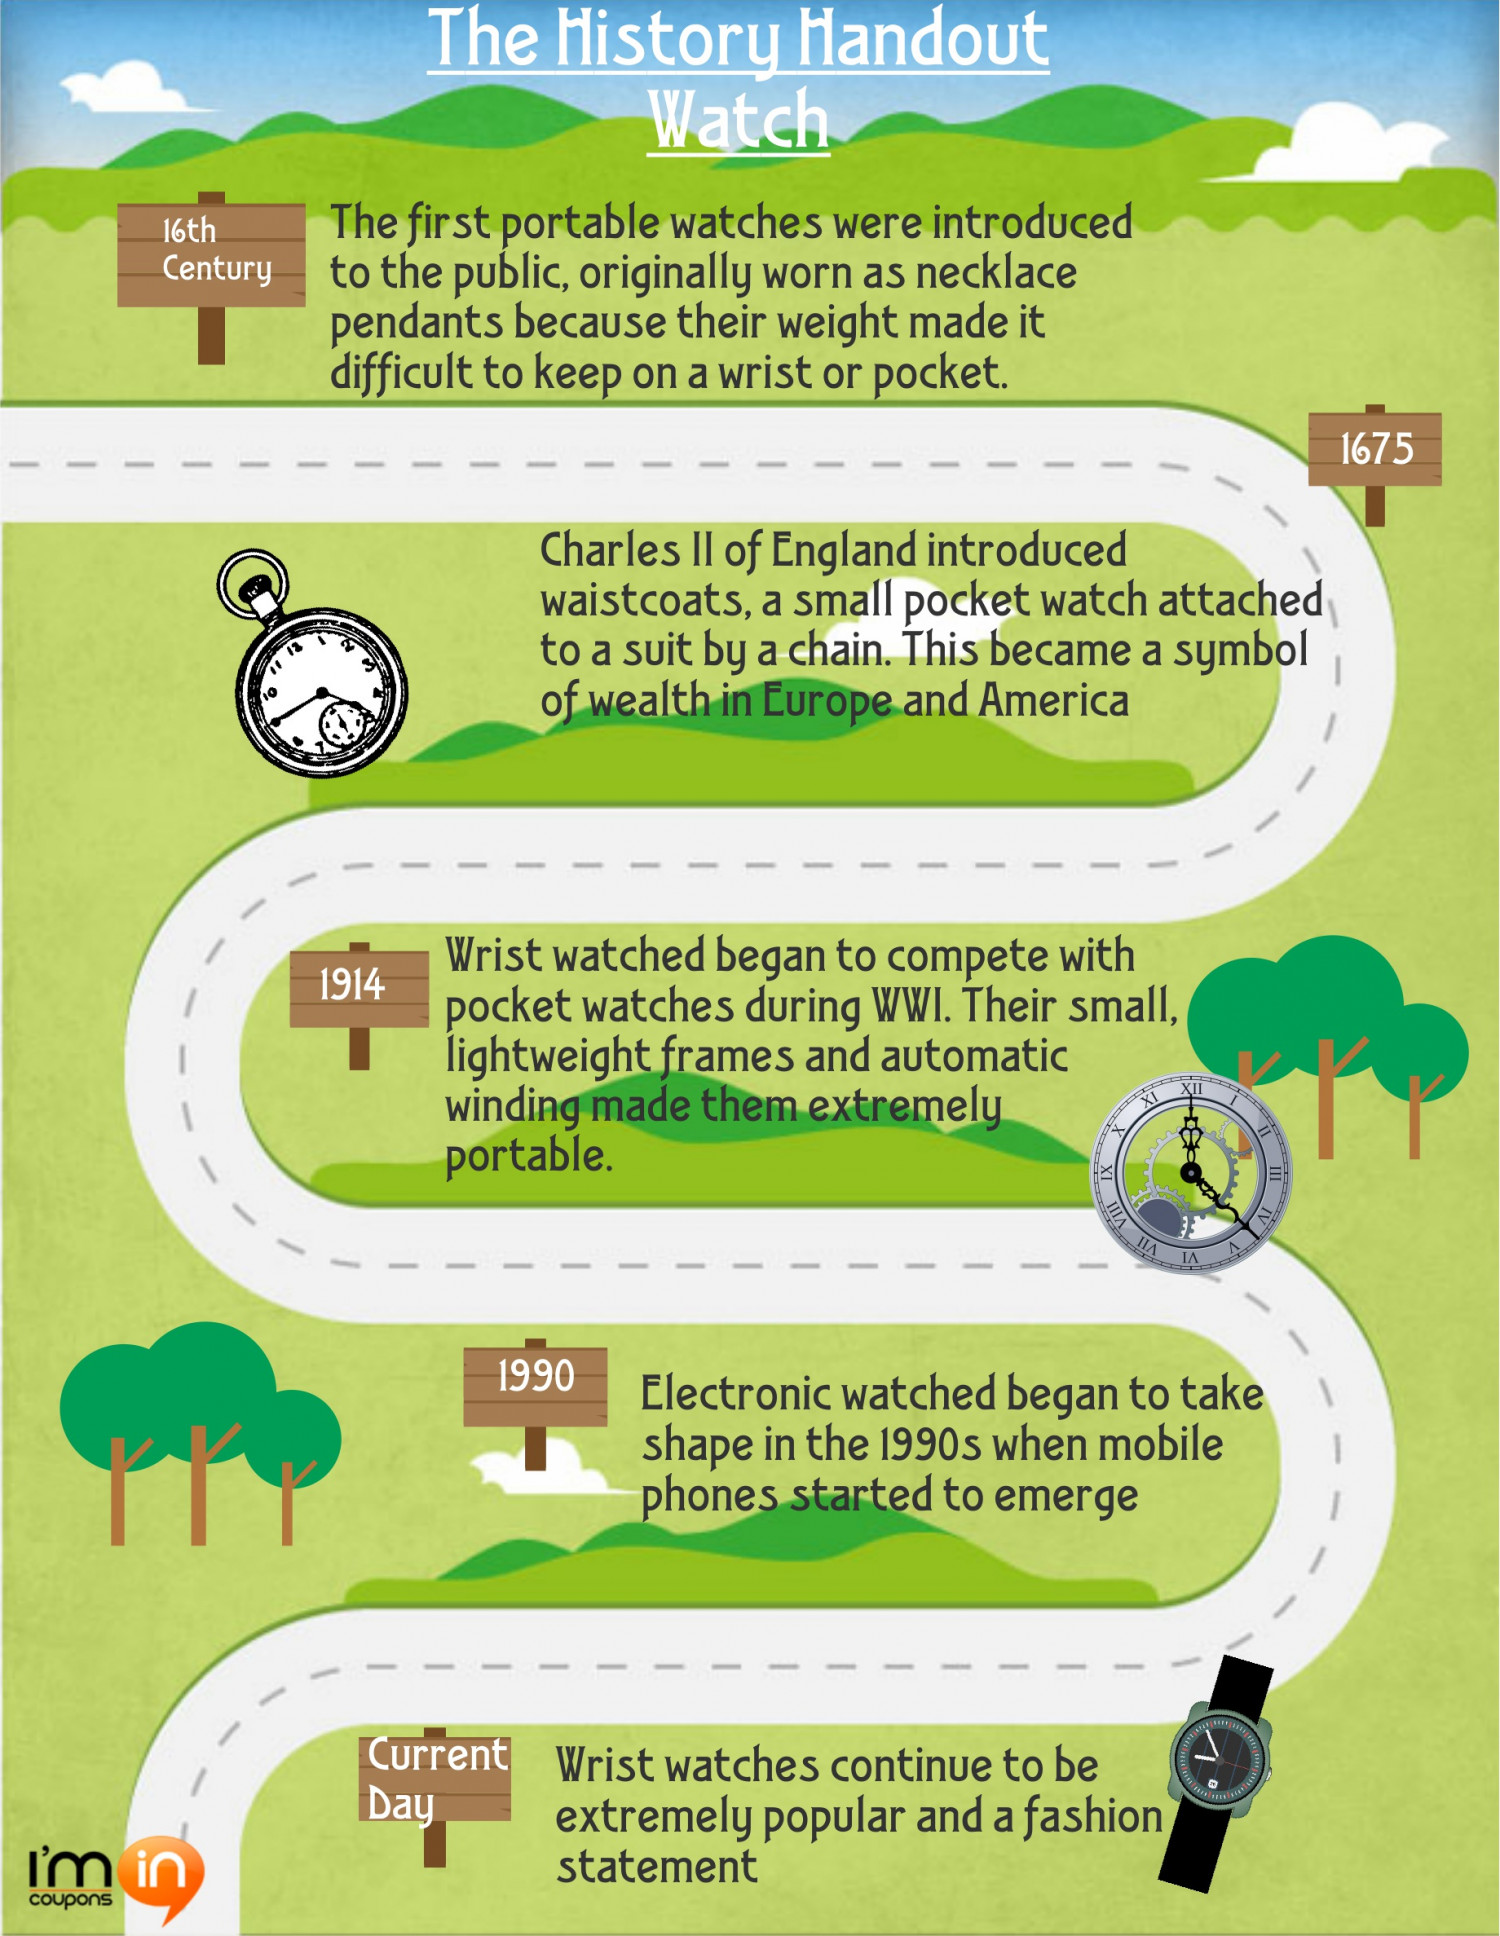 The History Handout - Watch Infographic